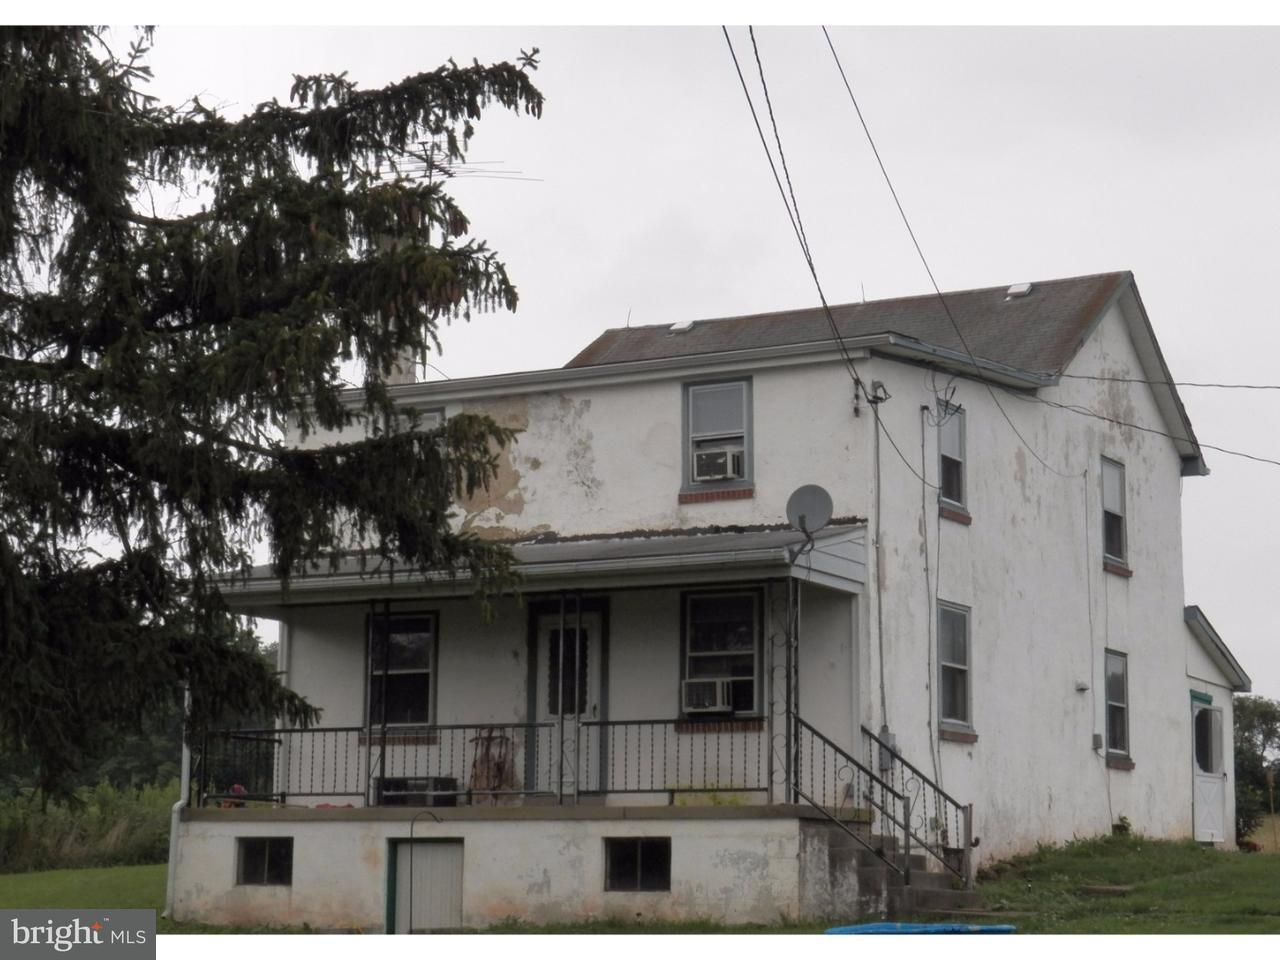 Single Family Home for Sale at 2282 WARNER SCHOOL Road East Greenville, Pennsylvania 18041 United States